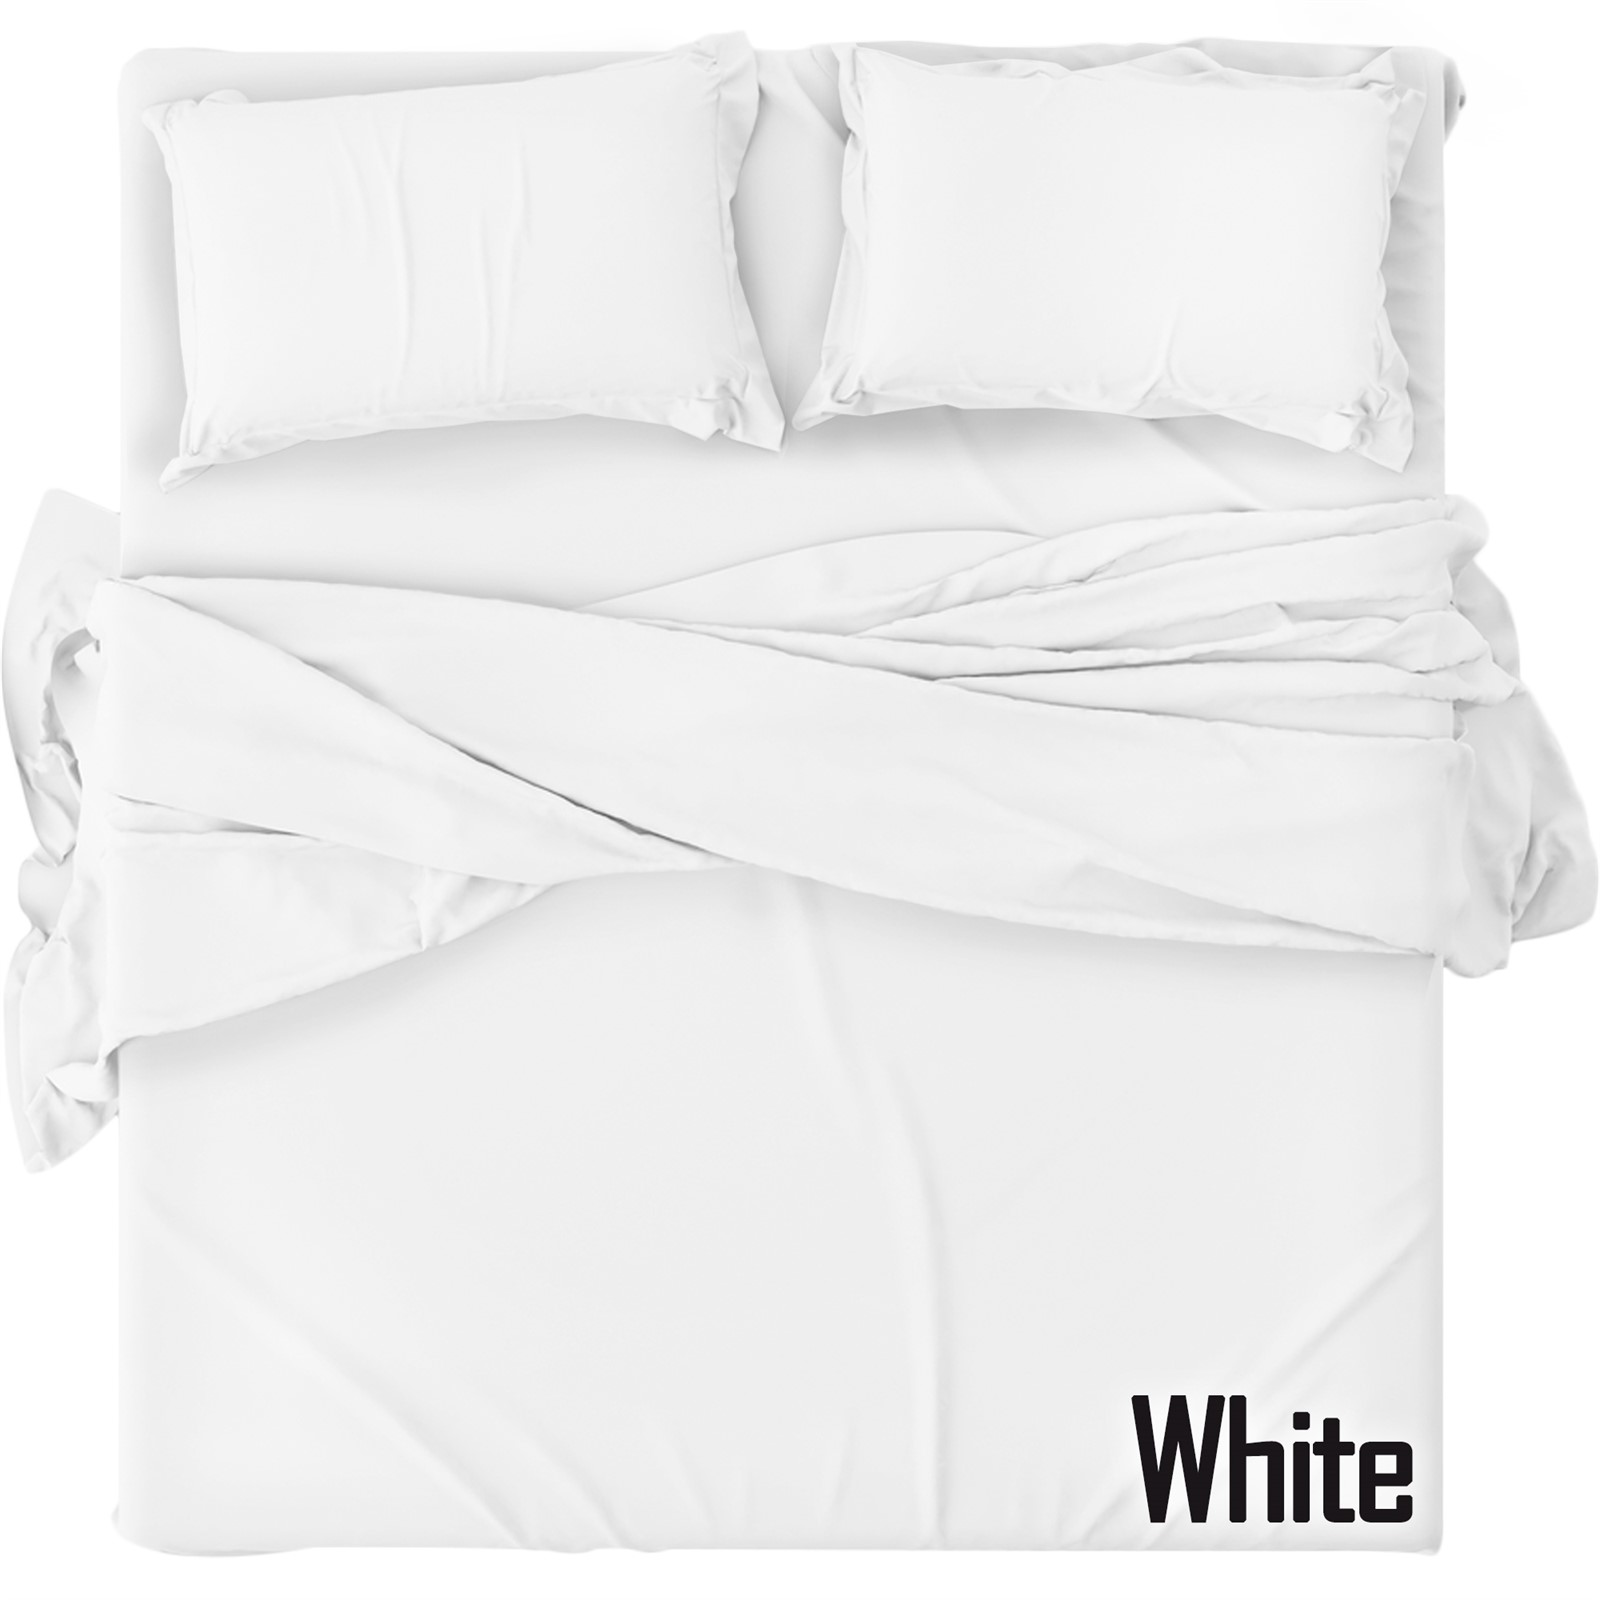 Super King Size Fitted Bed Sheet